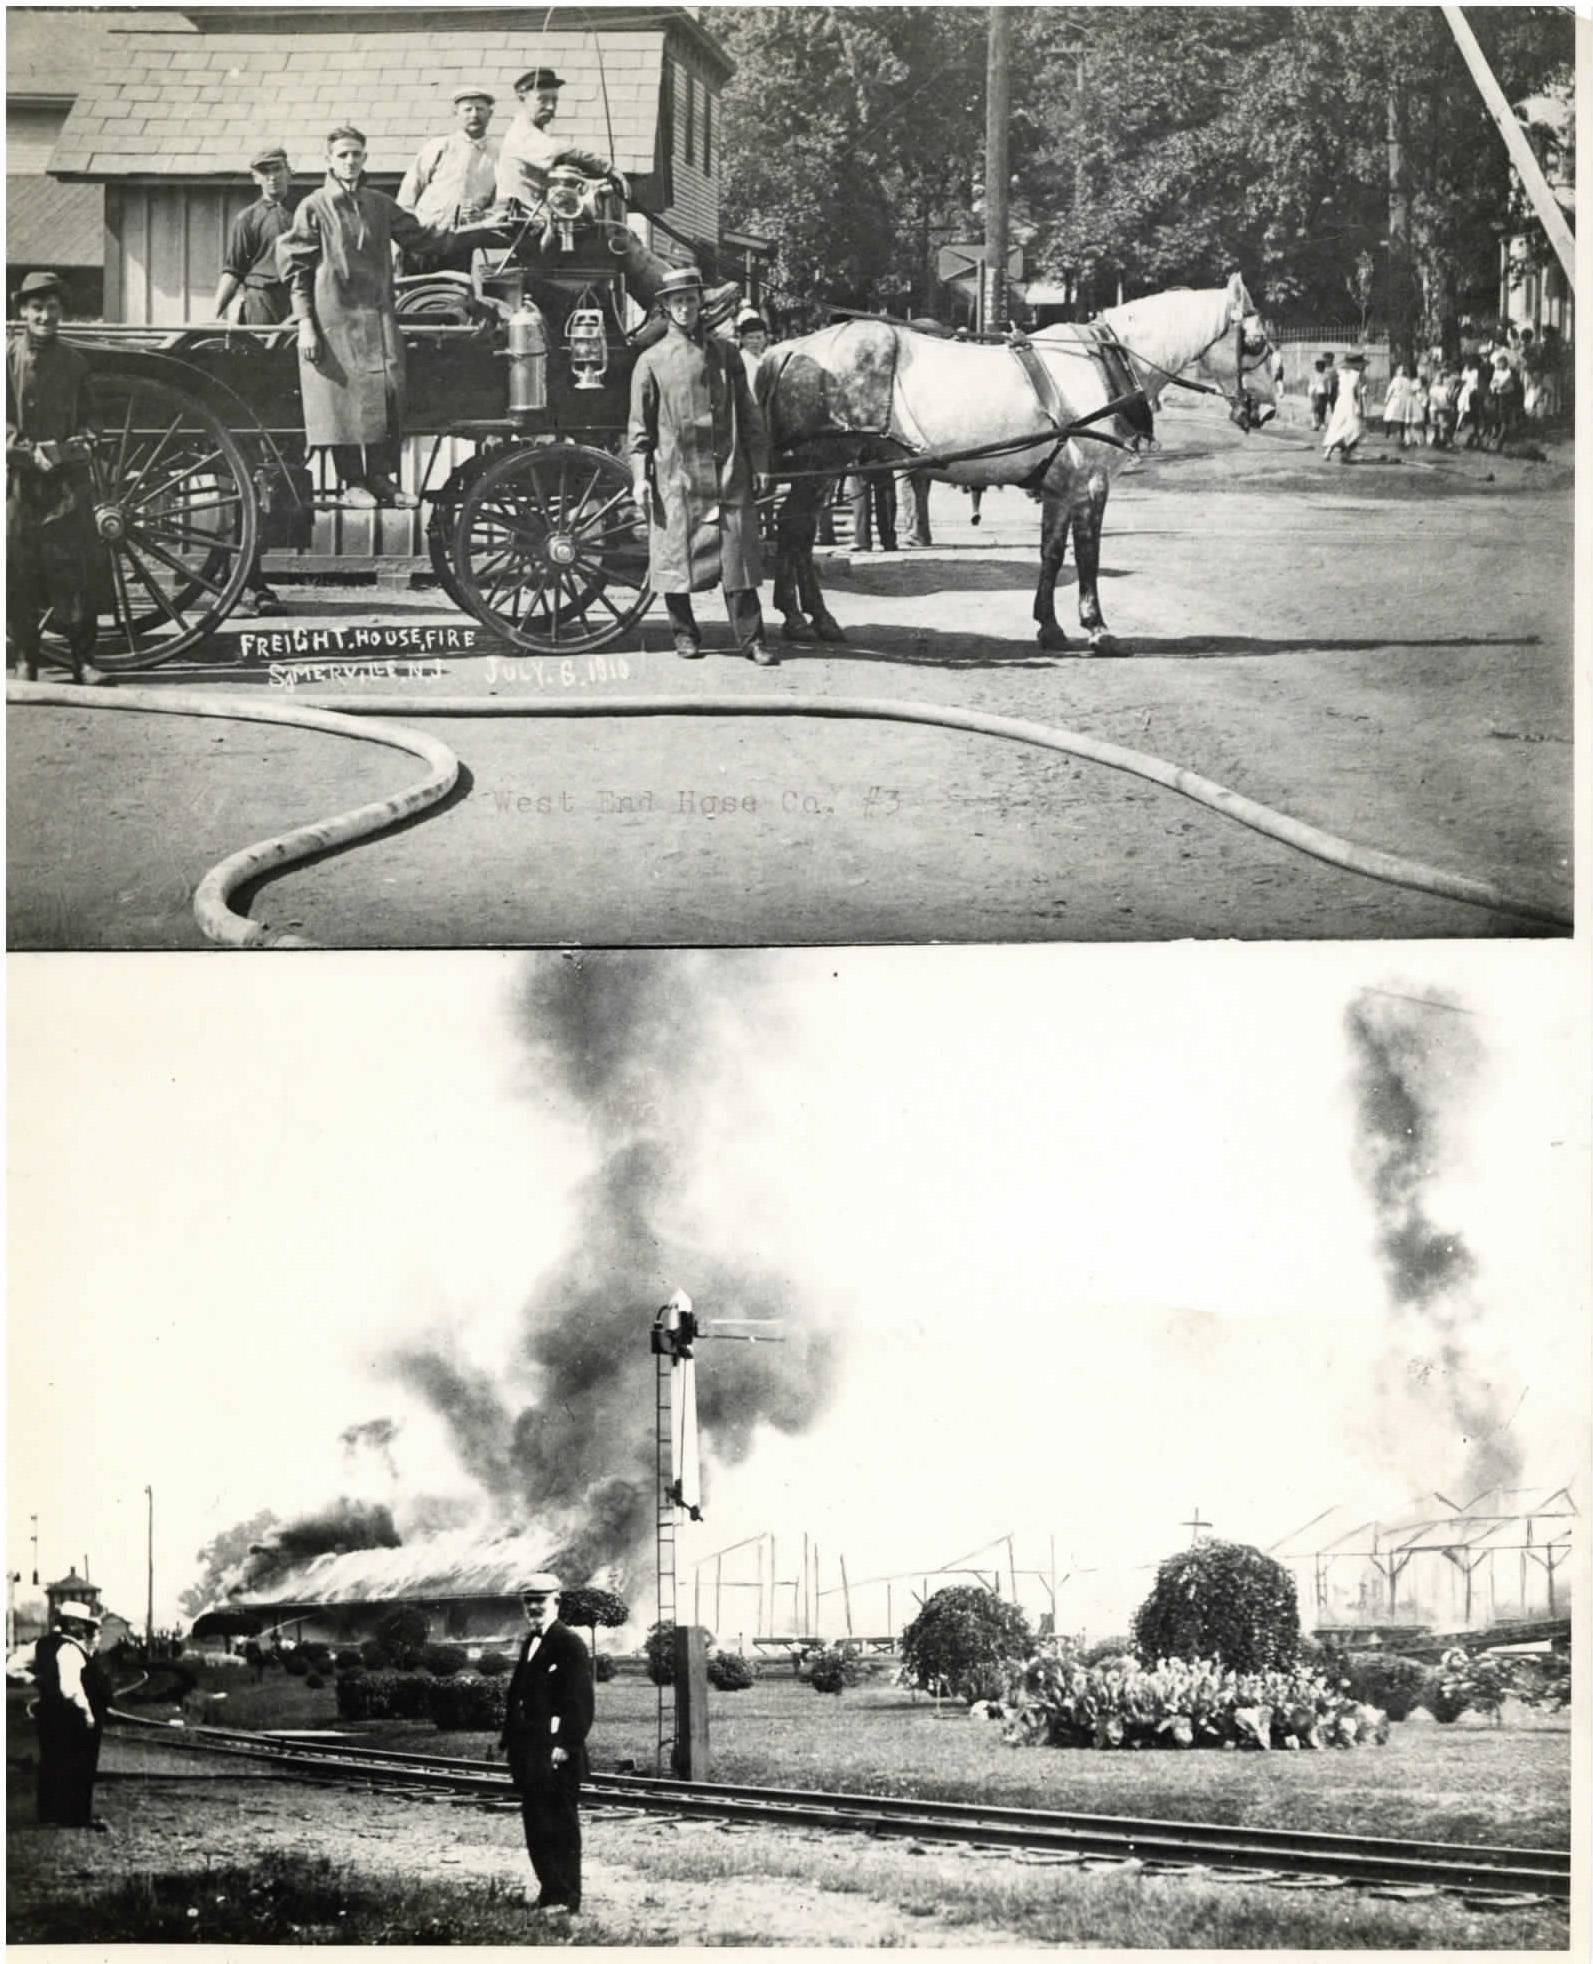 1910 July 6.W End hose 3.Freight&house fire, pic of Mr. Doughty_Page_1_Image_0001.jpg